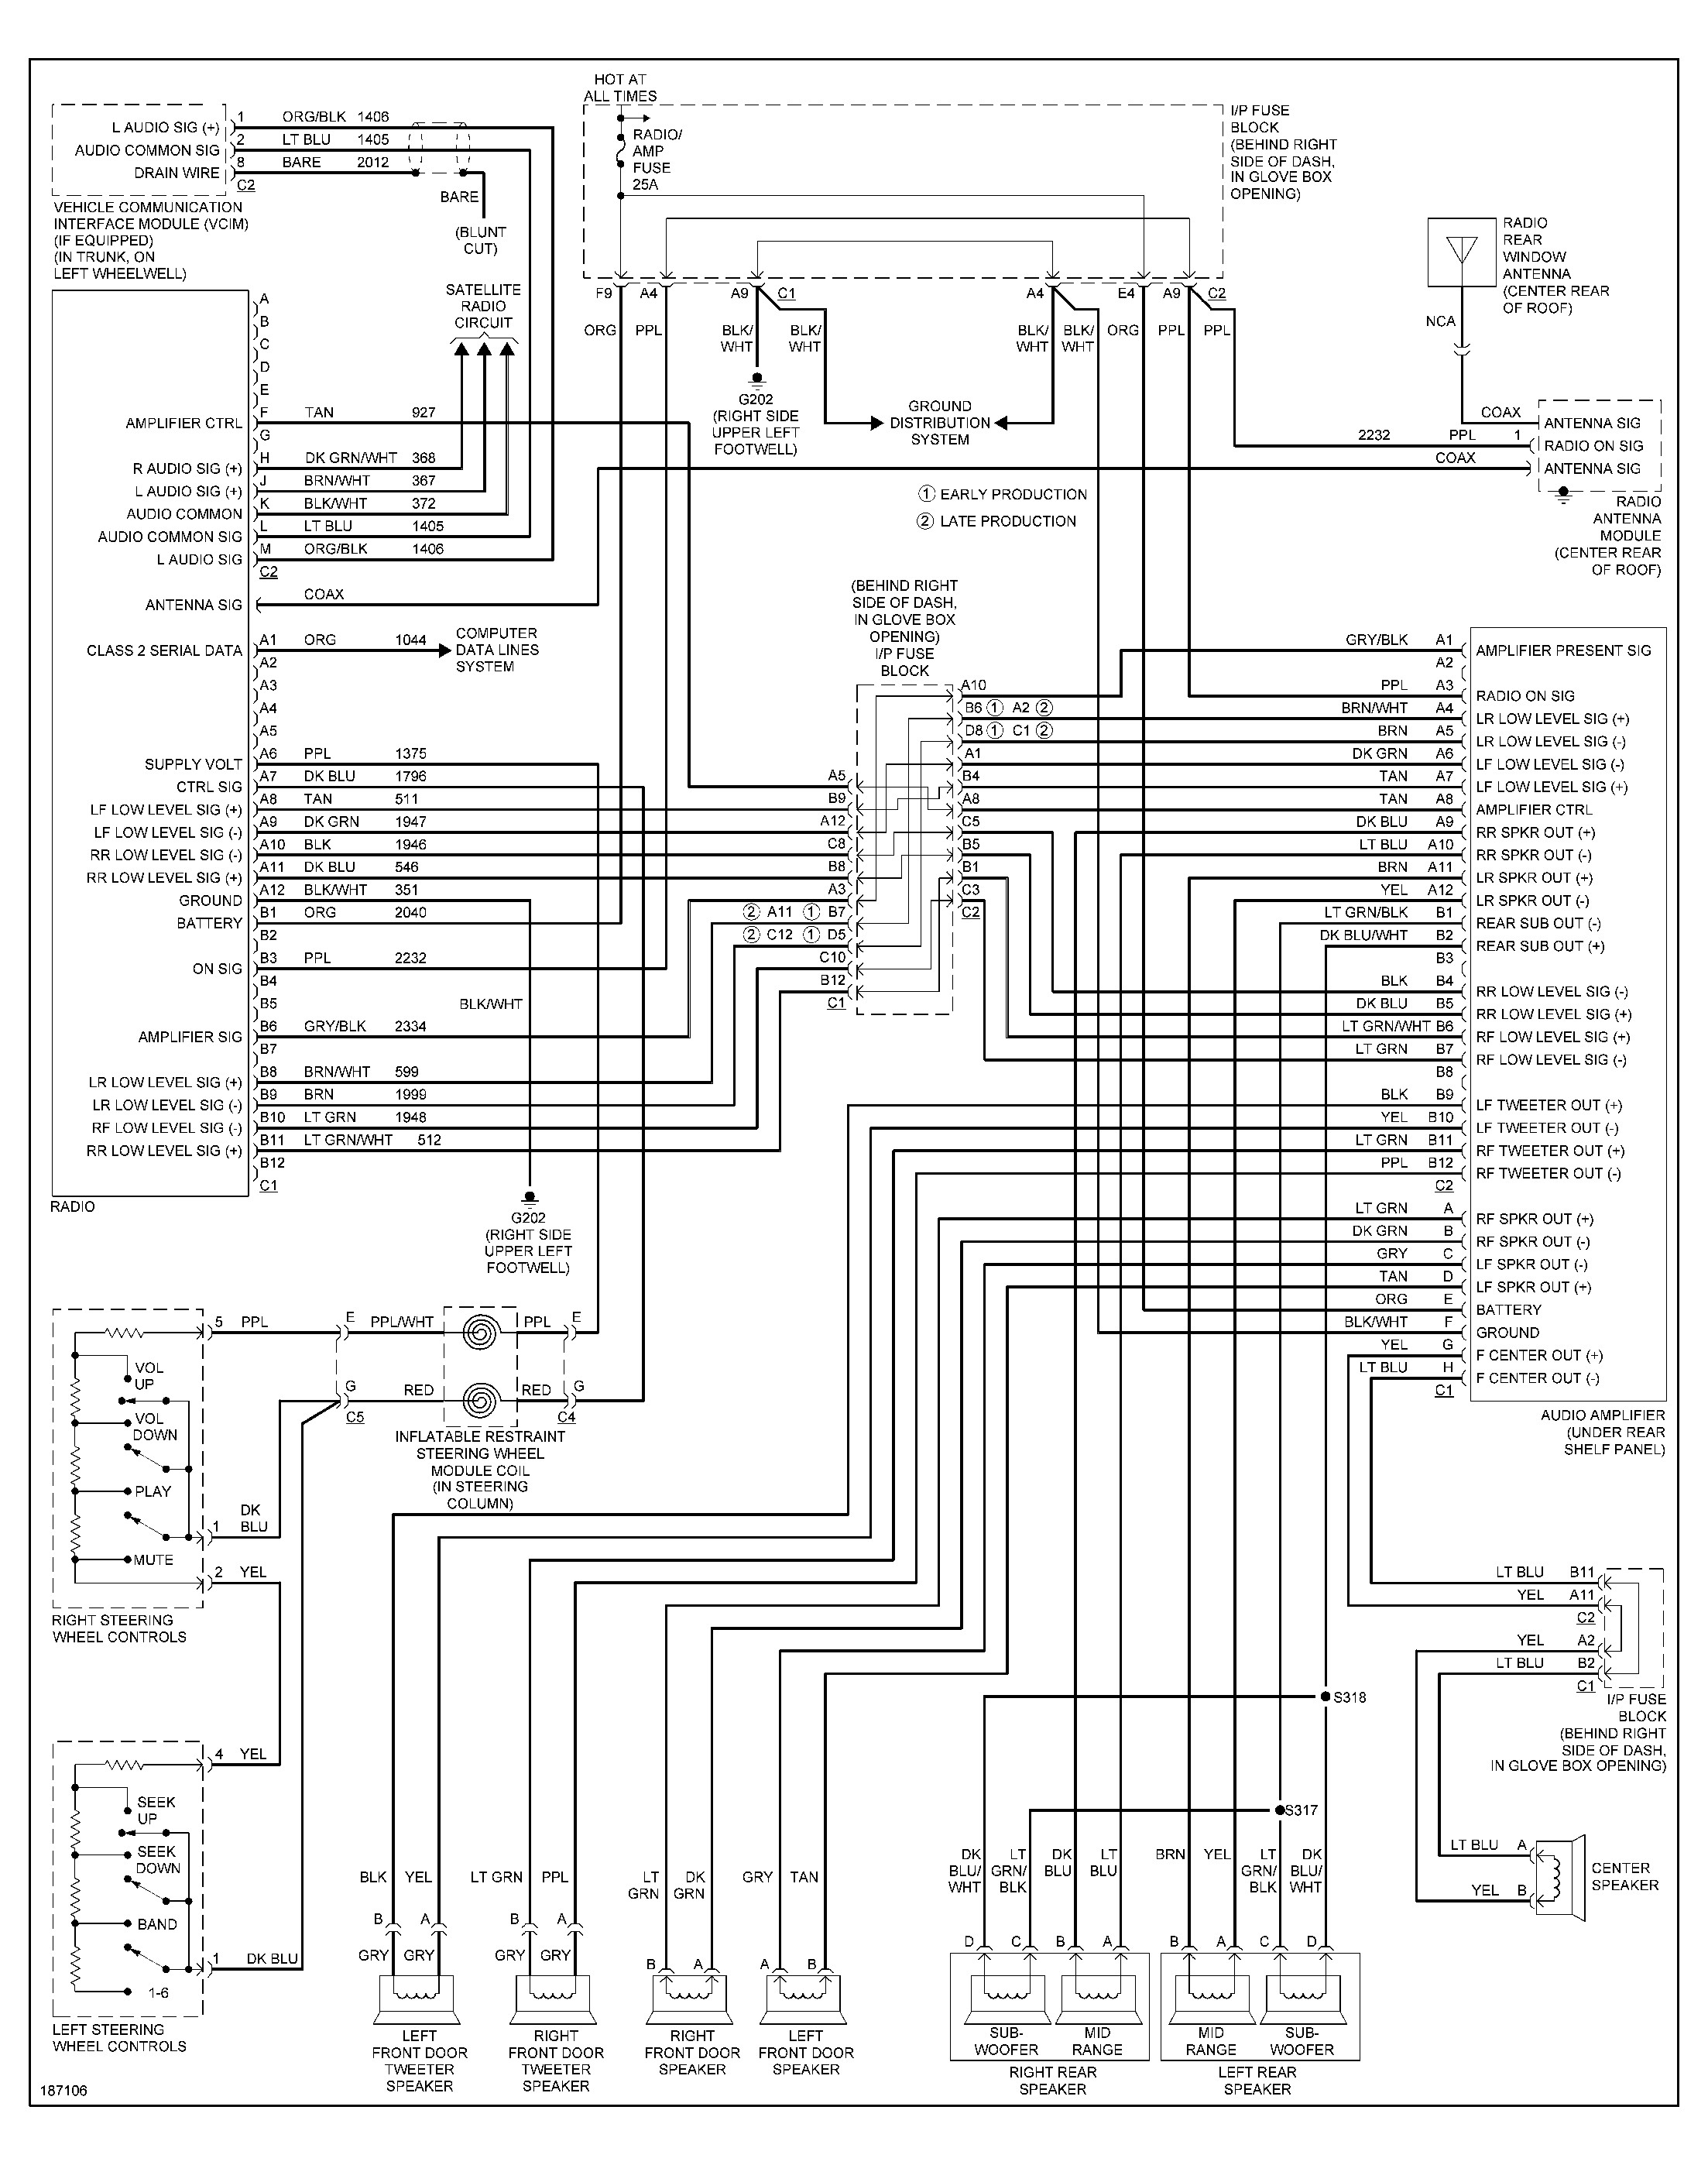 2001 pontiac sunfire wiring diagram auto wiring diagrams 2001 pontiac sunfire wiring diagram